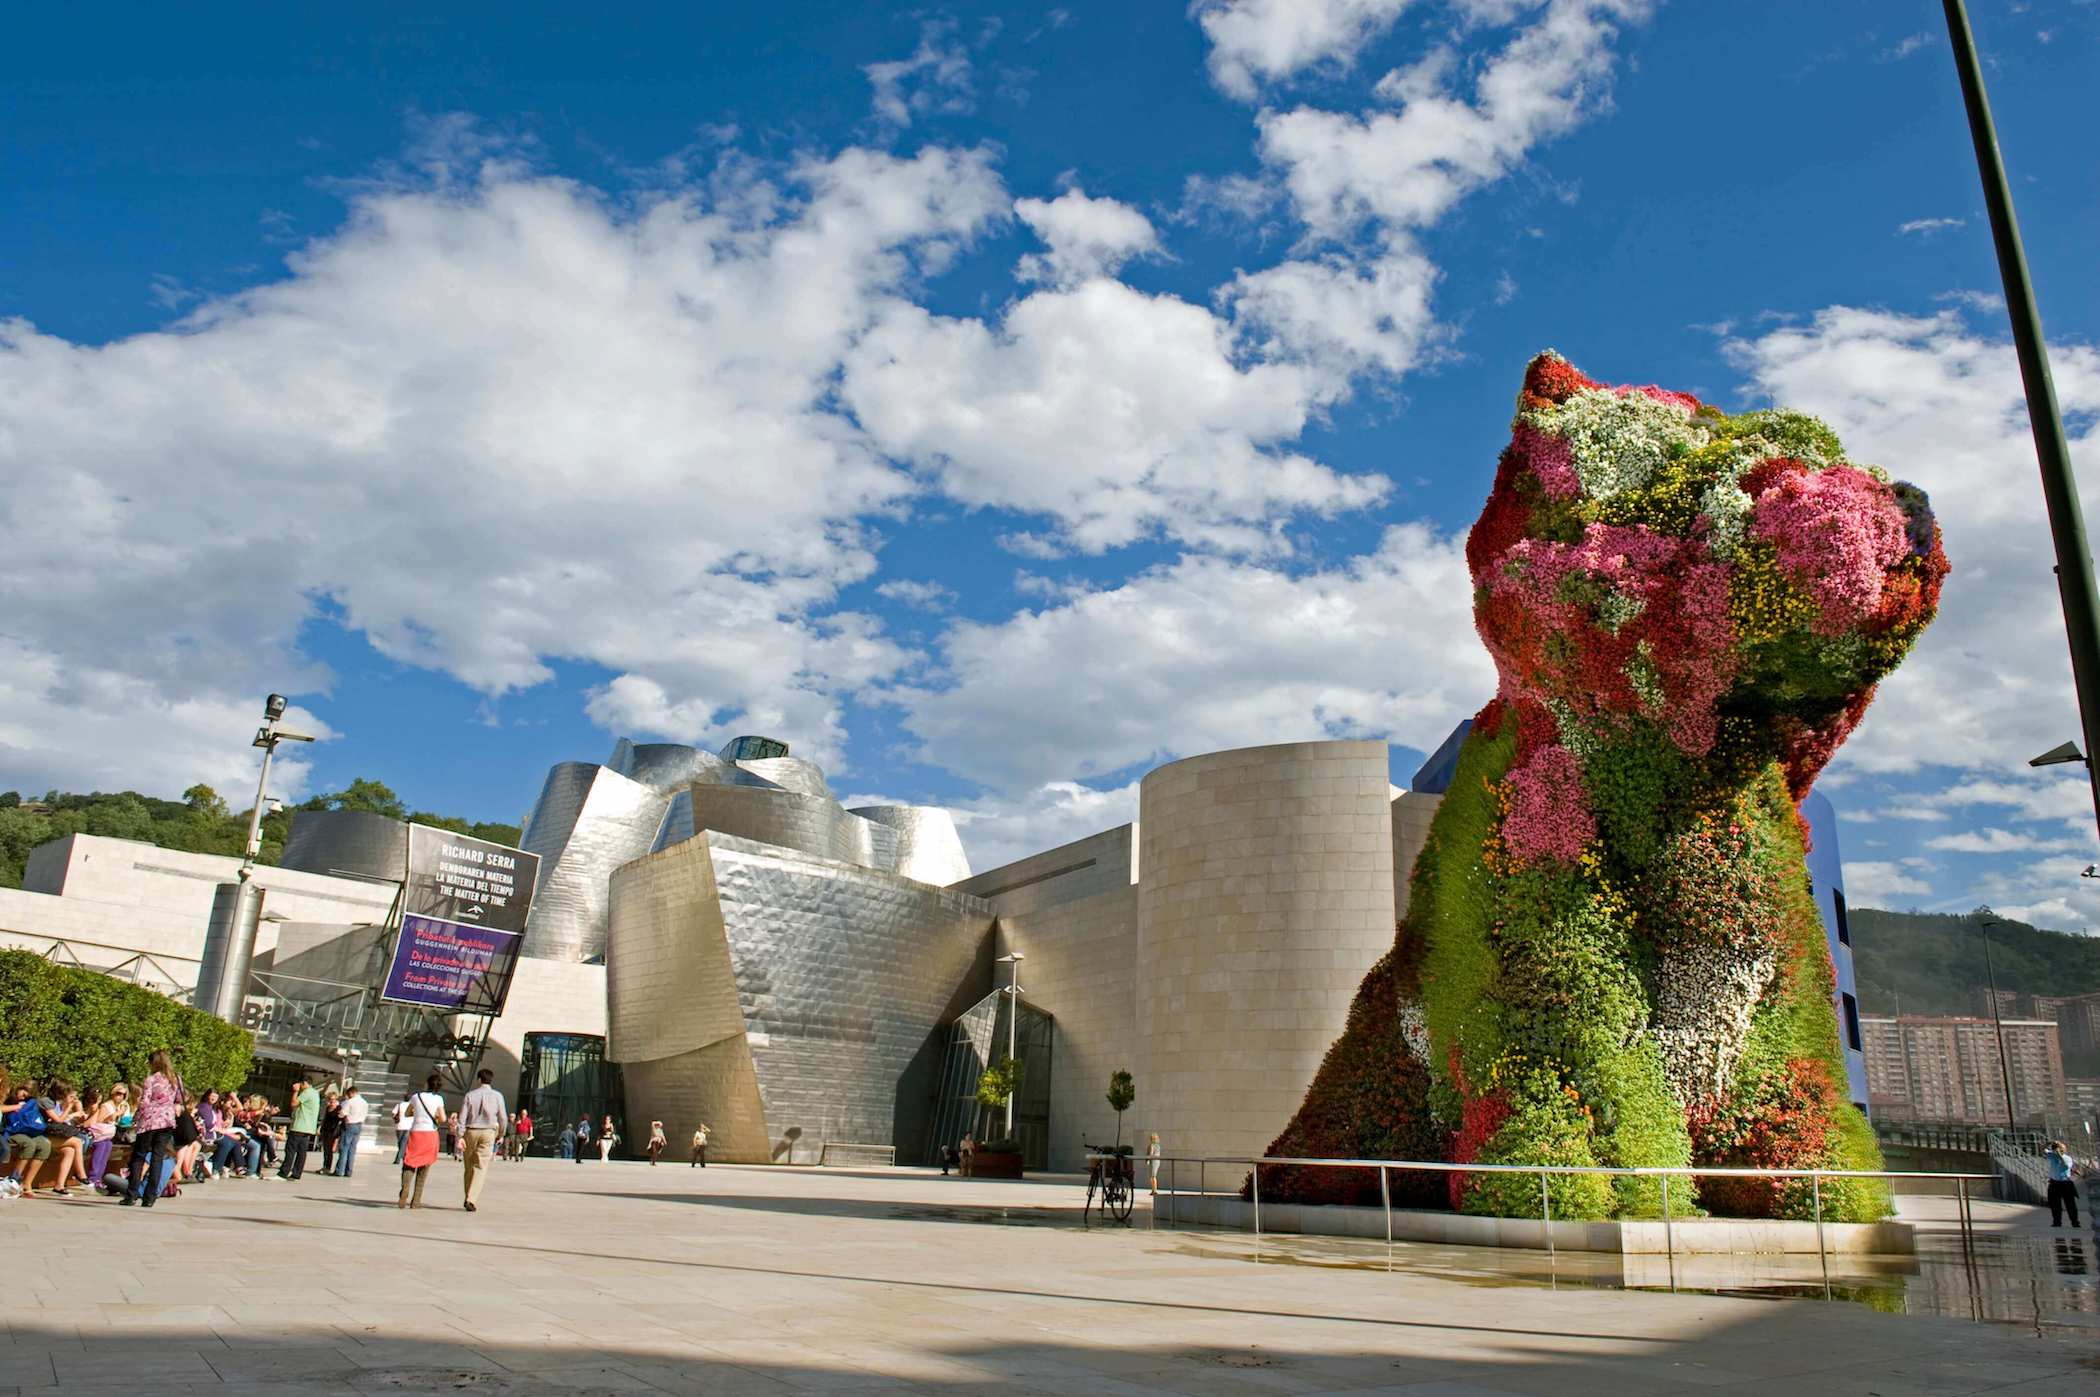 Puppy next to the building | Jeff Koons | Guggenheim Bilbao Museoa